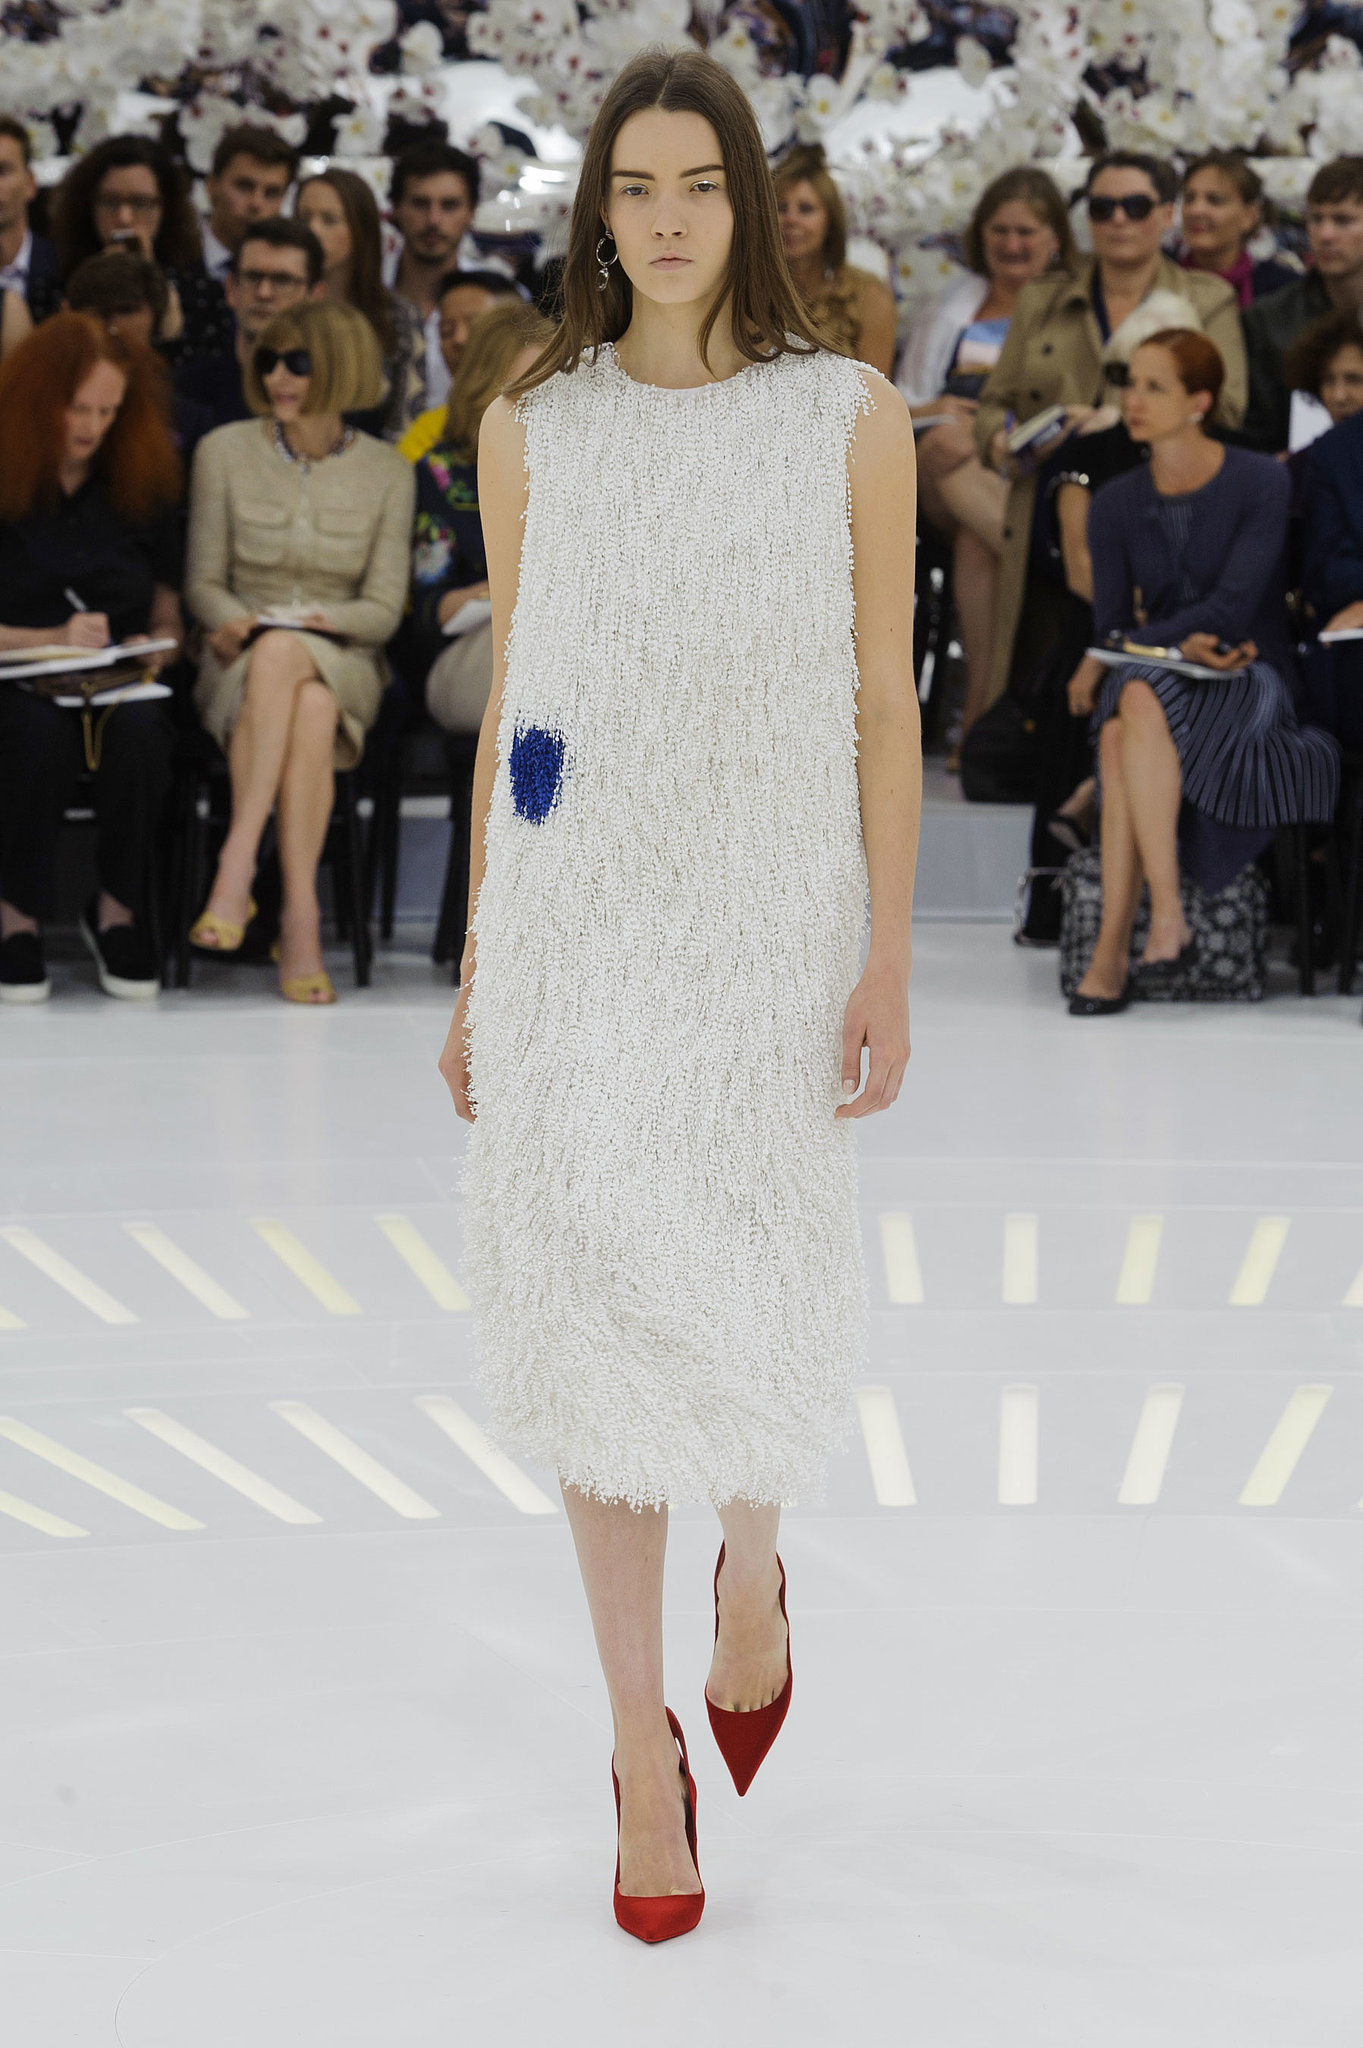 Dior Fall 2014 Couture: The Best From The Show And The Front Row